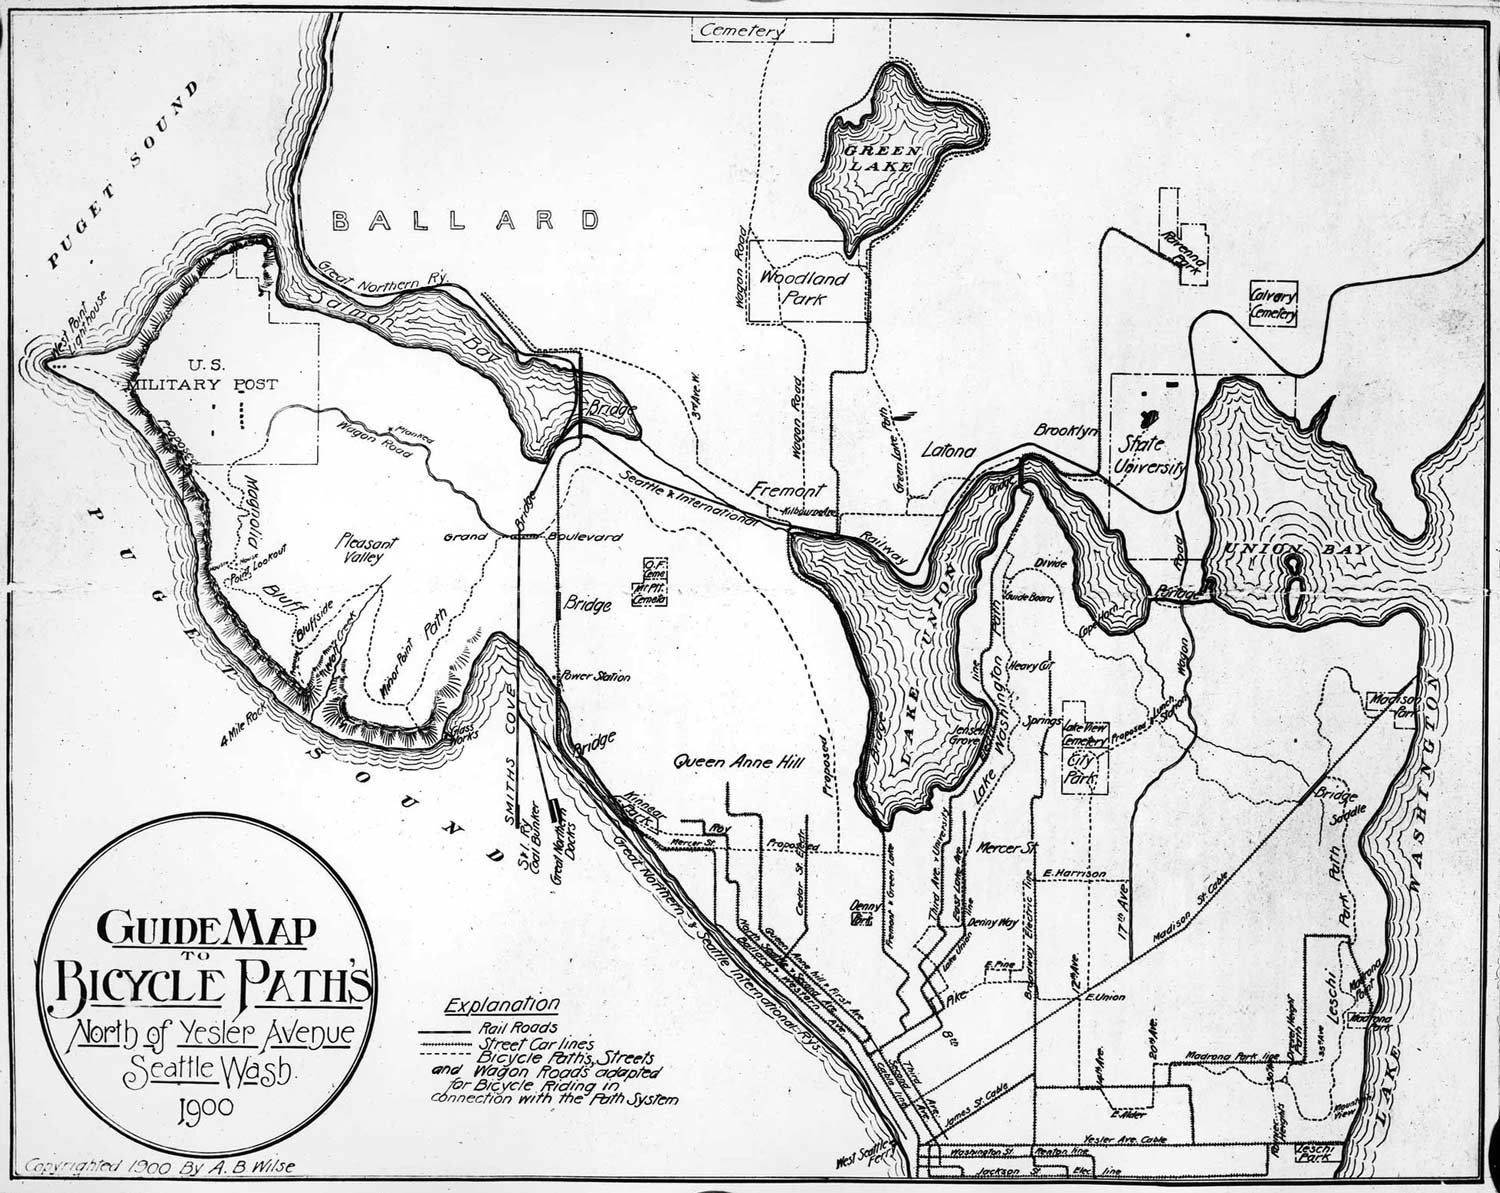 Seattle bike paths - 1900